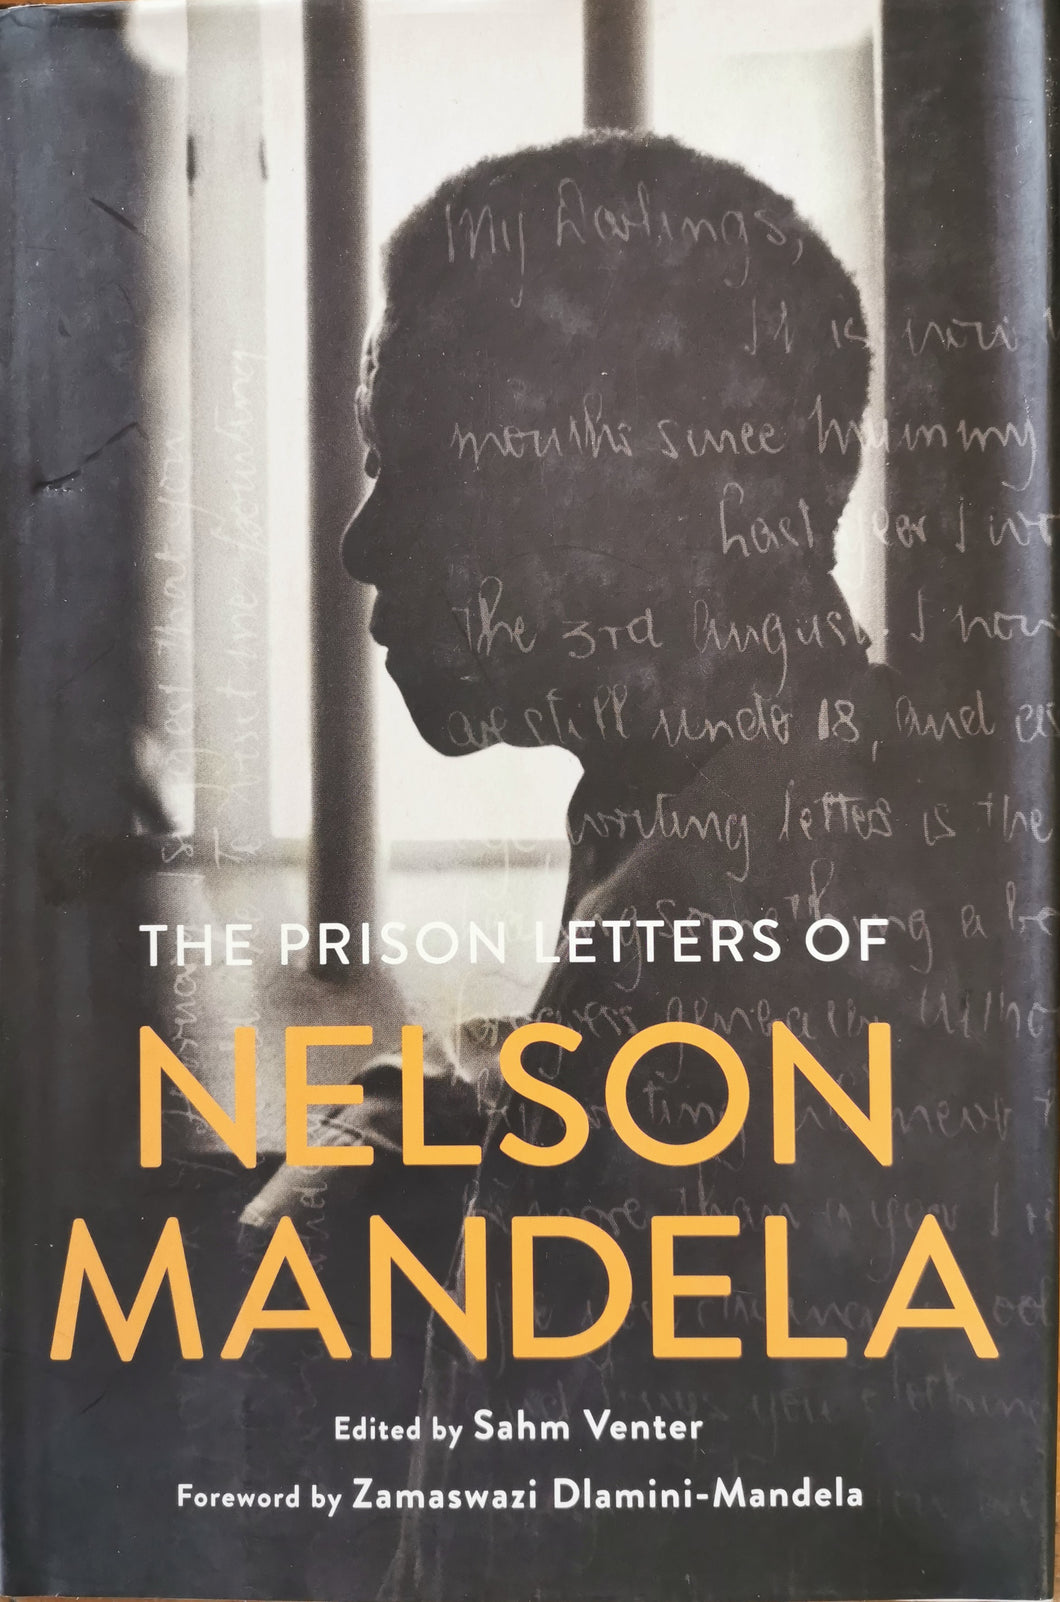 The Prison Letters of Nelson Mandela - edited by Sahm Venter